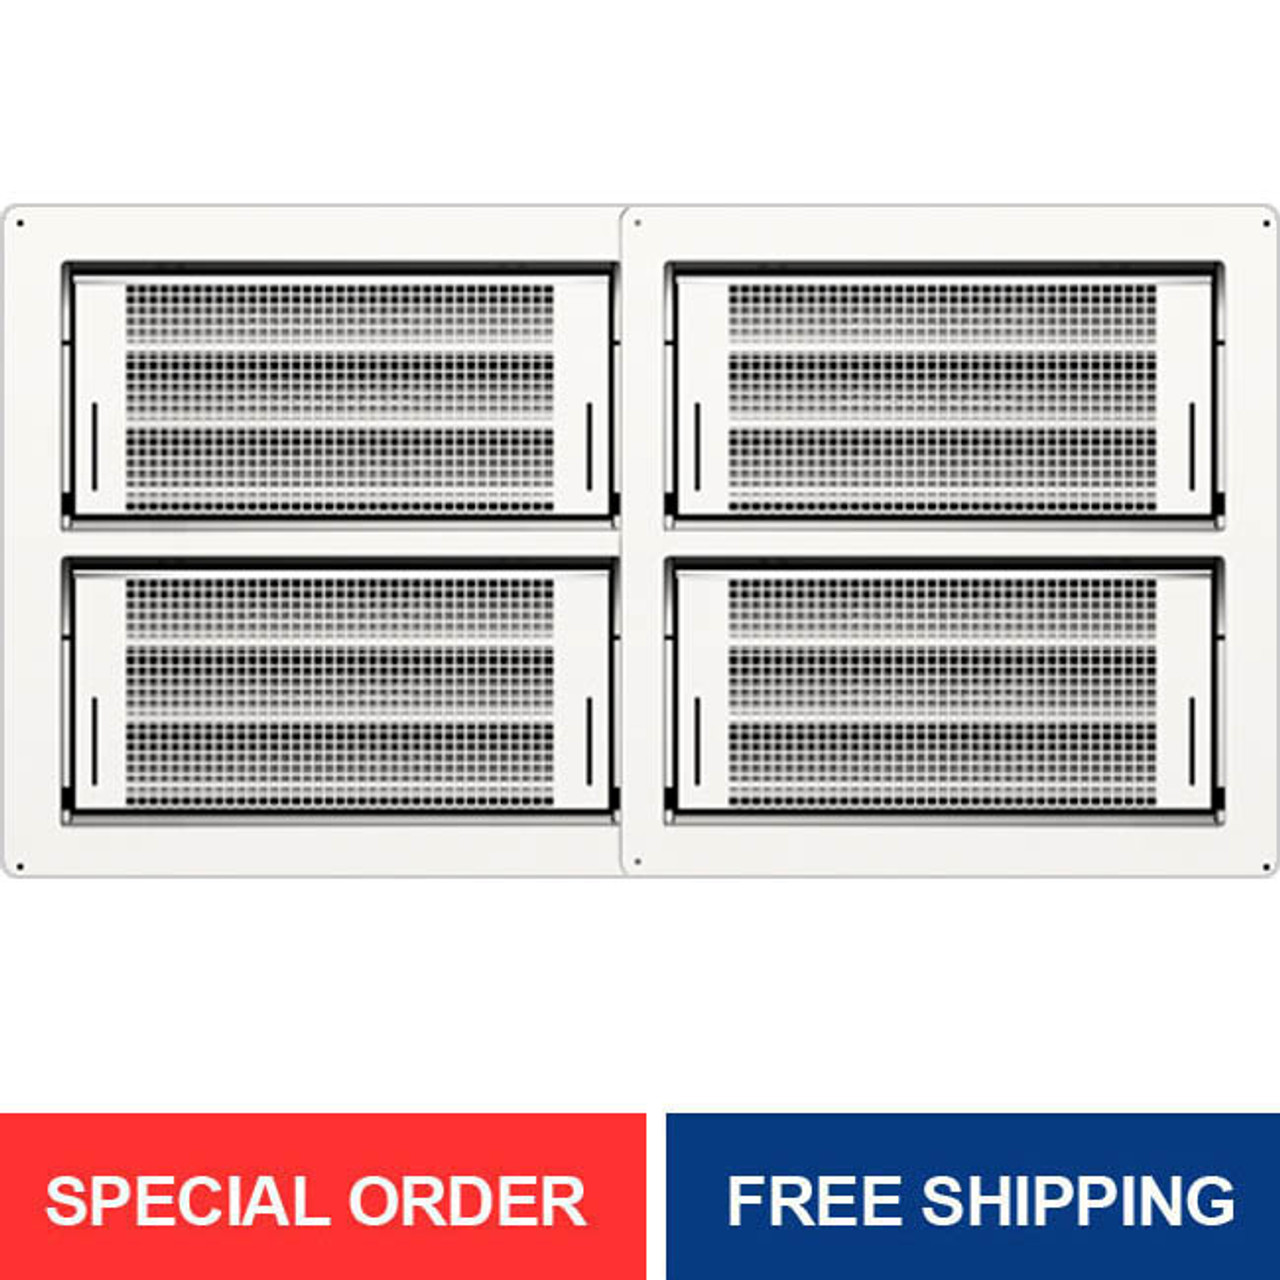 Quad Smart Vent Dual Function Powder Coated White 1540-150202E-1540-0039-WHT Block Wall